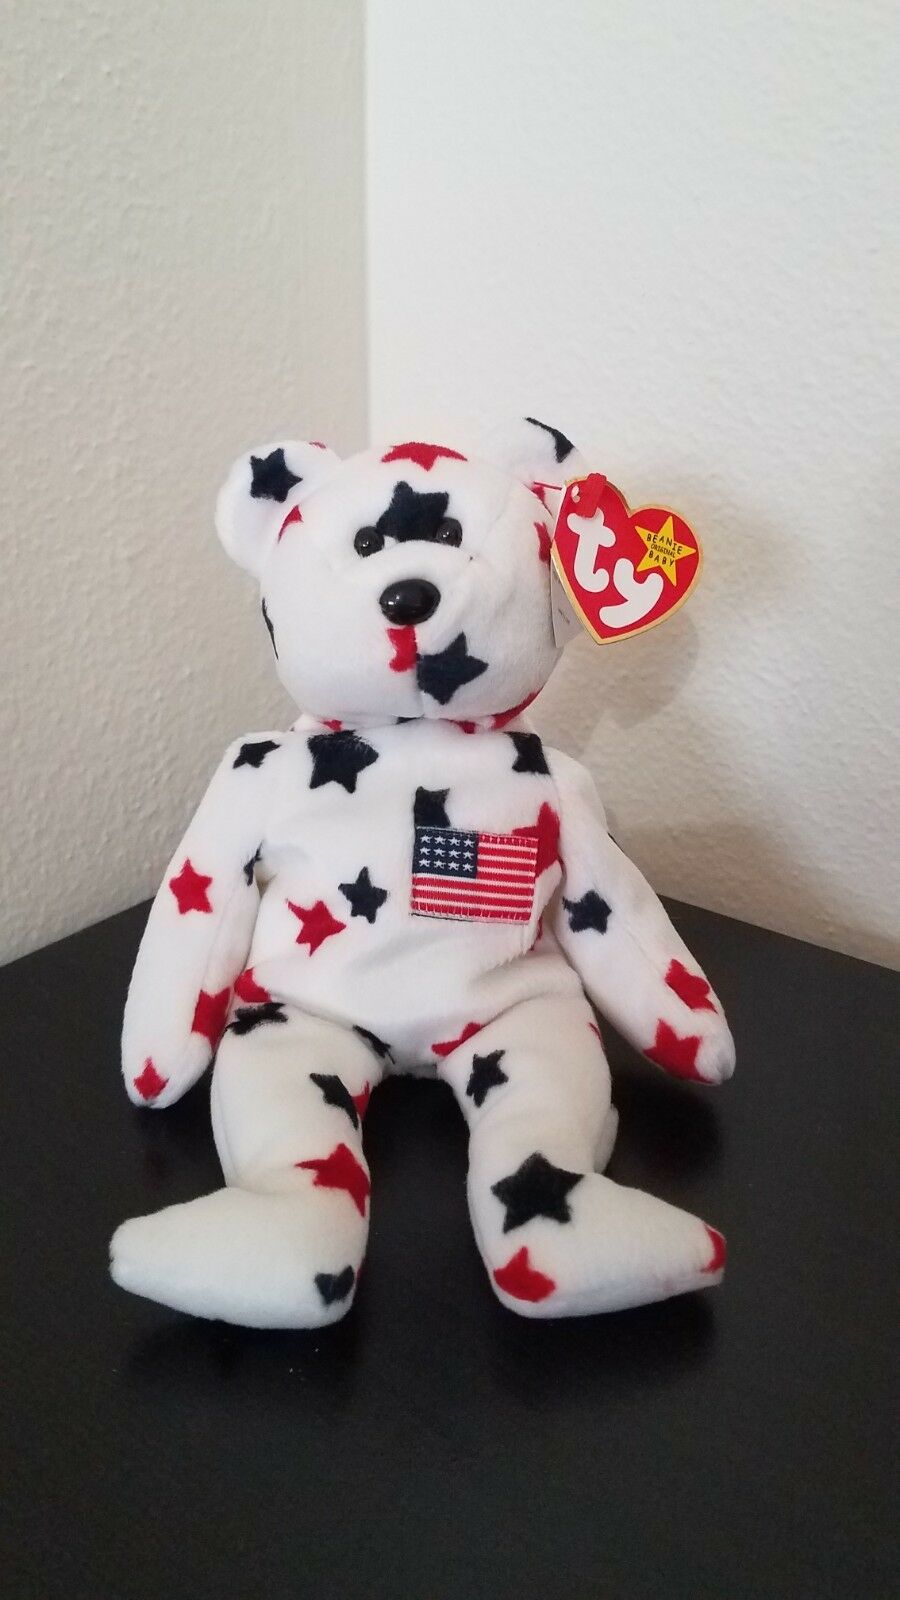 TY Beanie Babies  GLORY  the the the USA PATRIOTIC TEDDY BEAR. GREAT condition  95e5d2